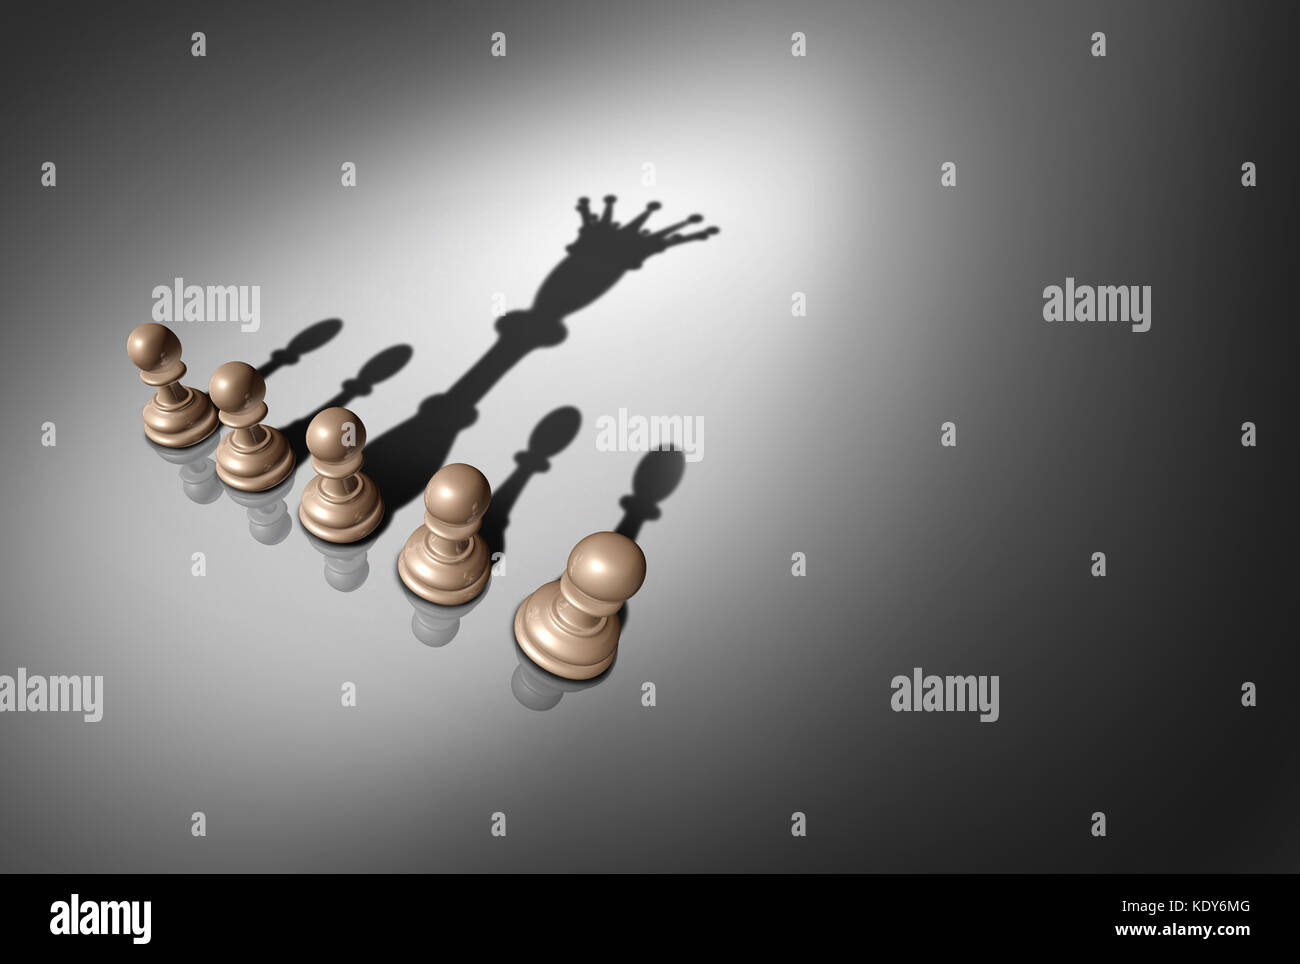 Concept of leader and leadership as a group of chess pawn pieces with one piece casting a shadow of a king as a - Stock Image